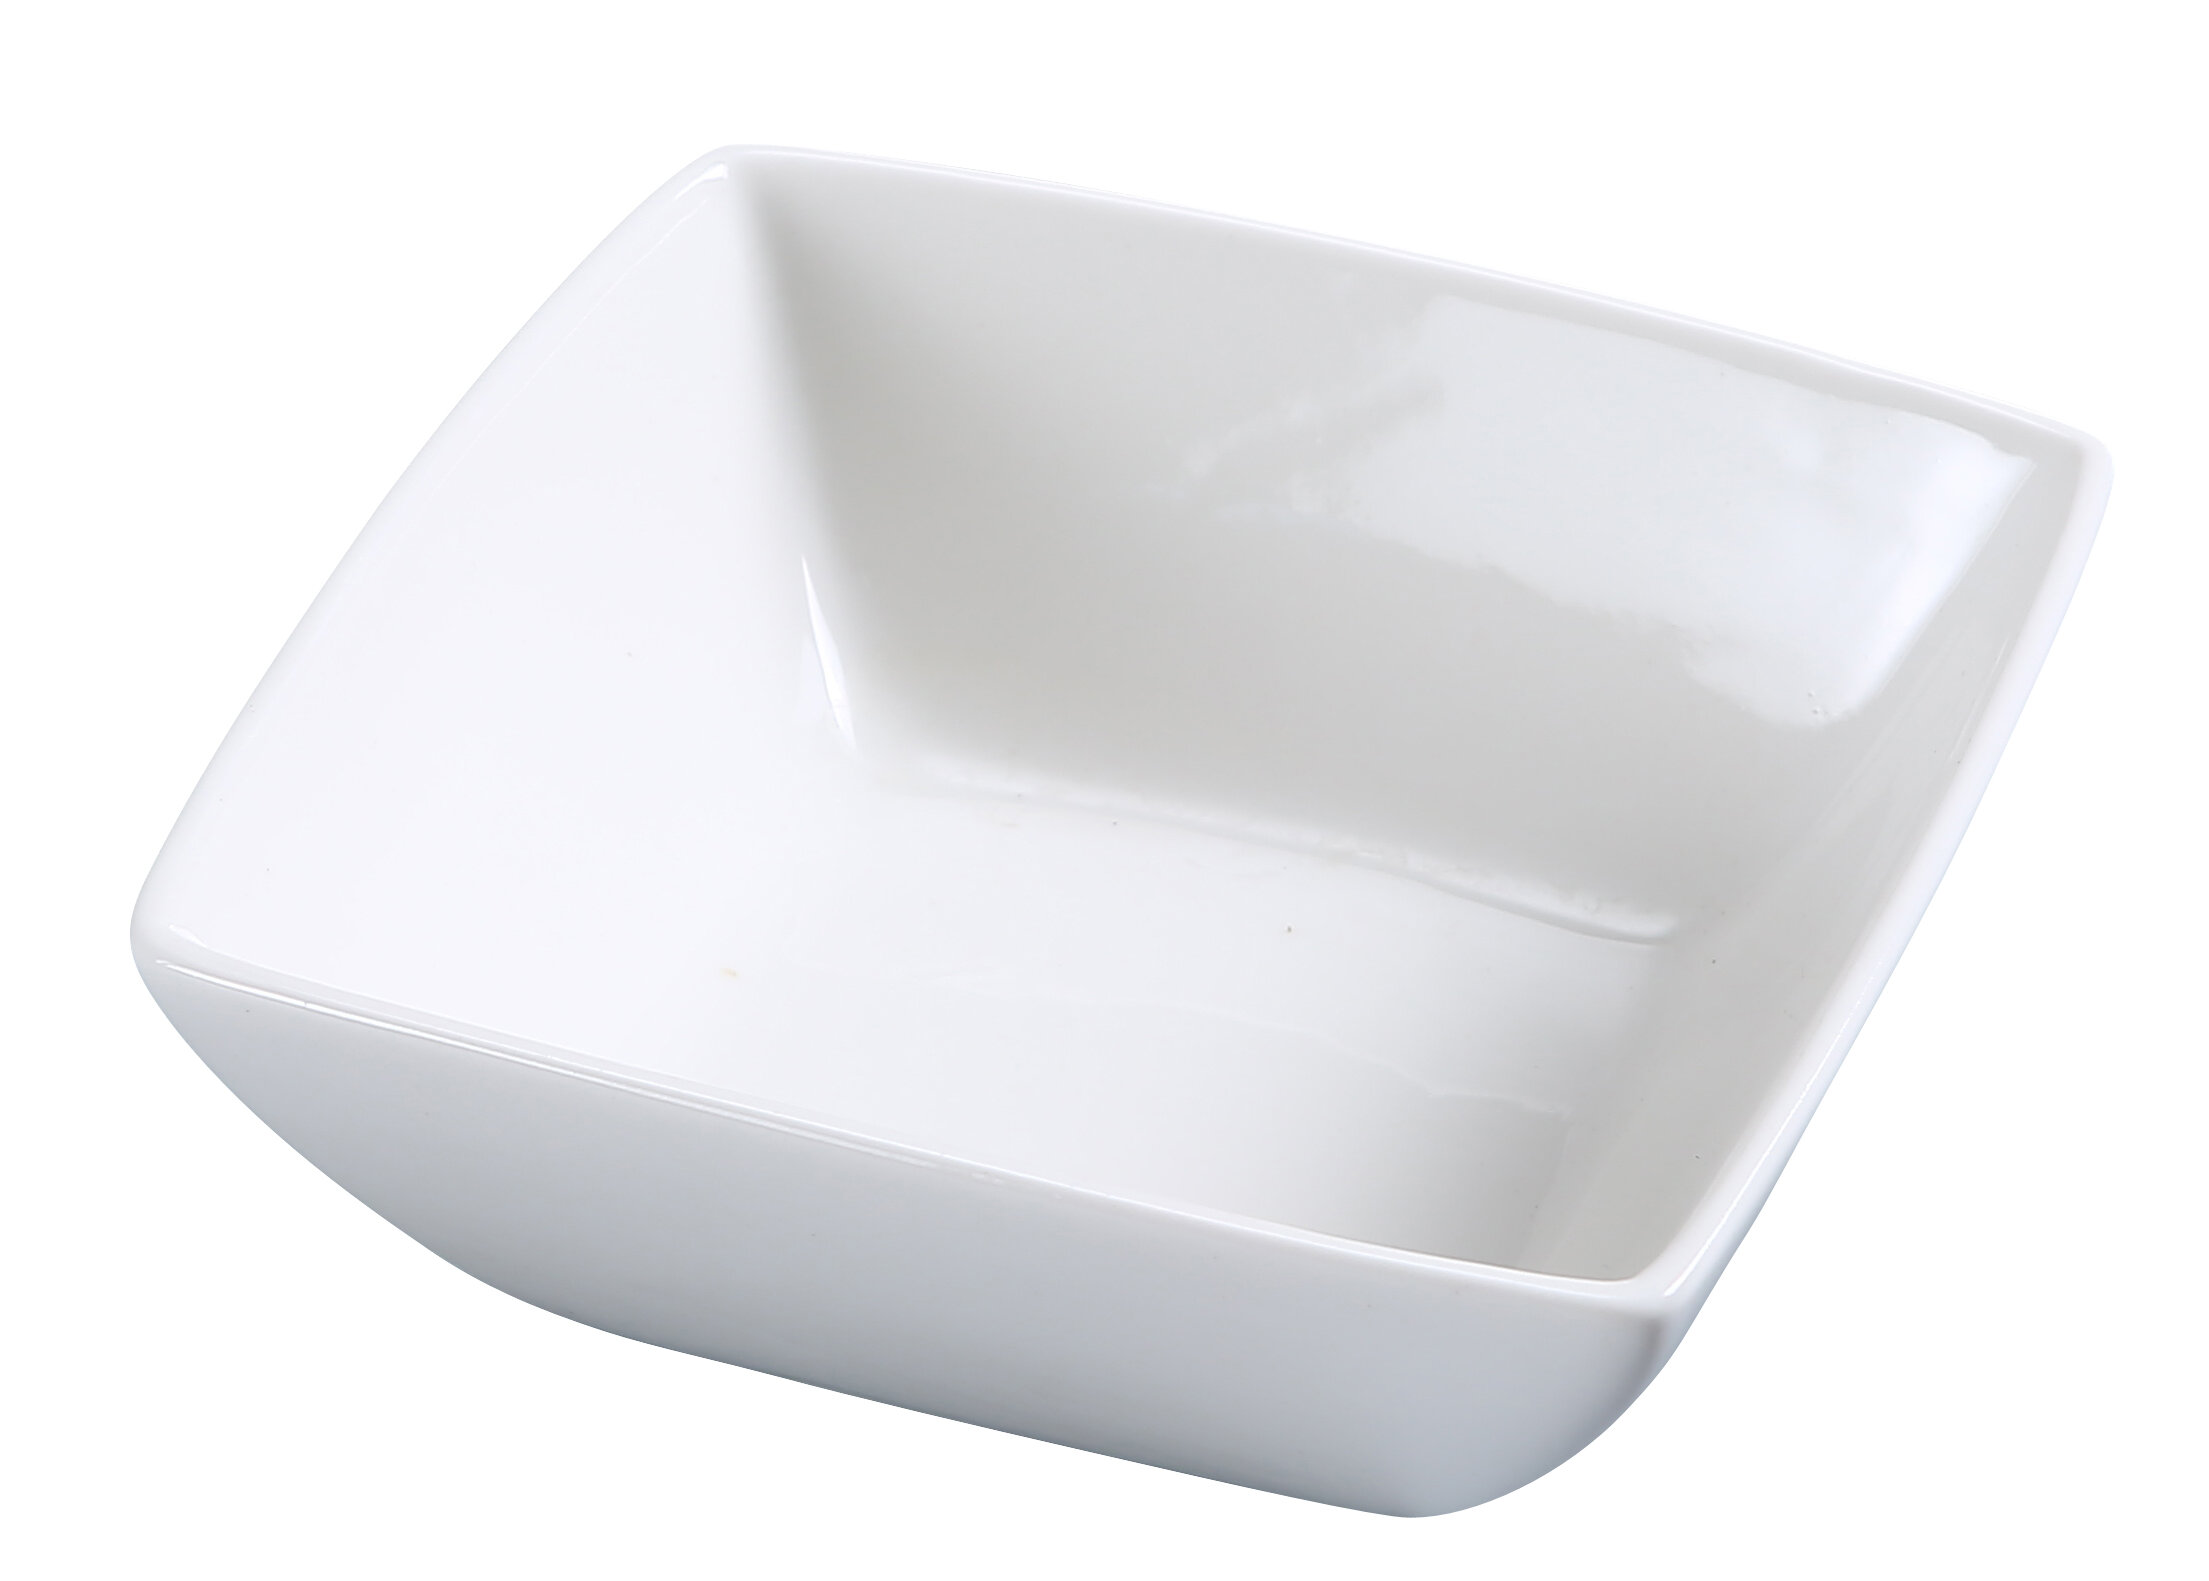 Orren Ellis Rueda 72 Oz Square Pasta Bowl Wayfair